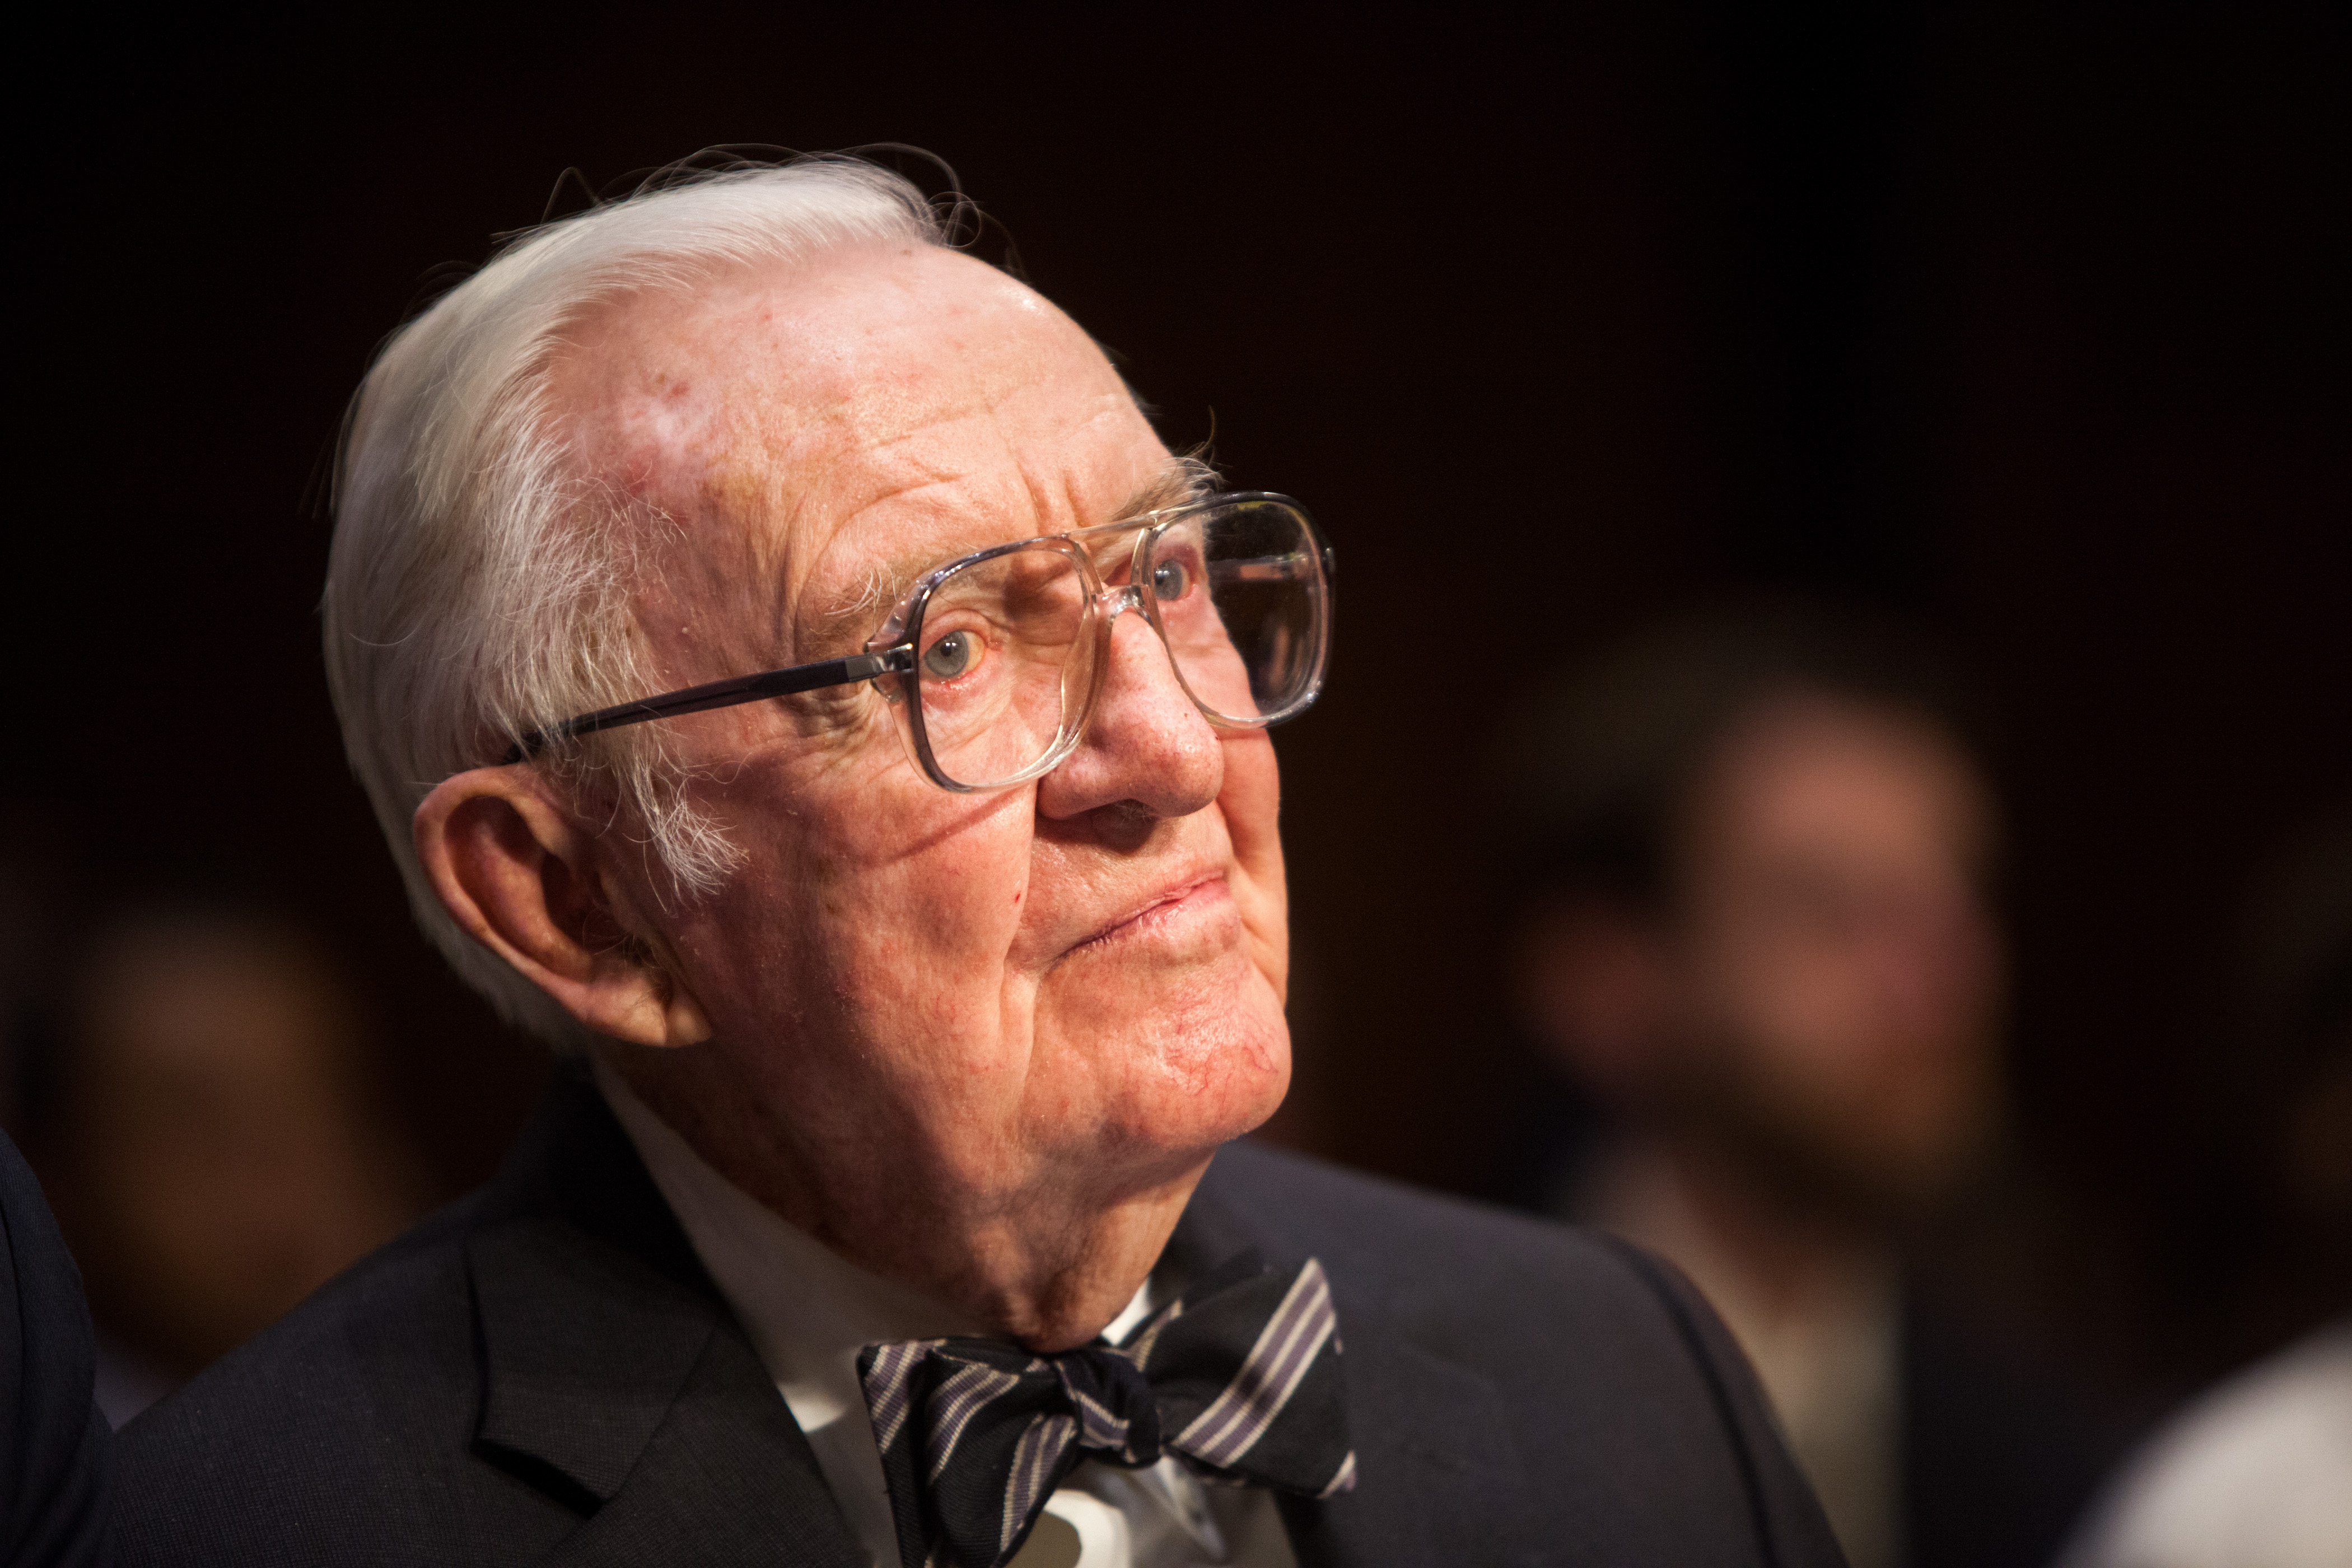 Former Supreme Court Justice John Paul Stevens testifies before the Senate Committee on Campaign Finance on April 30, 2014 (Allison Shelley/Getty Images)